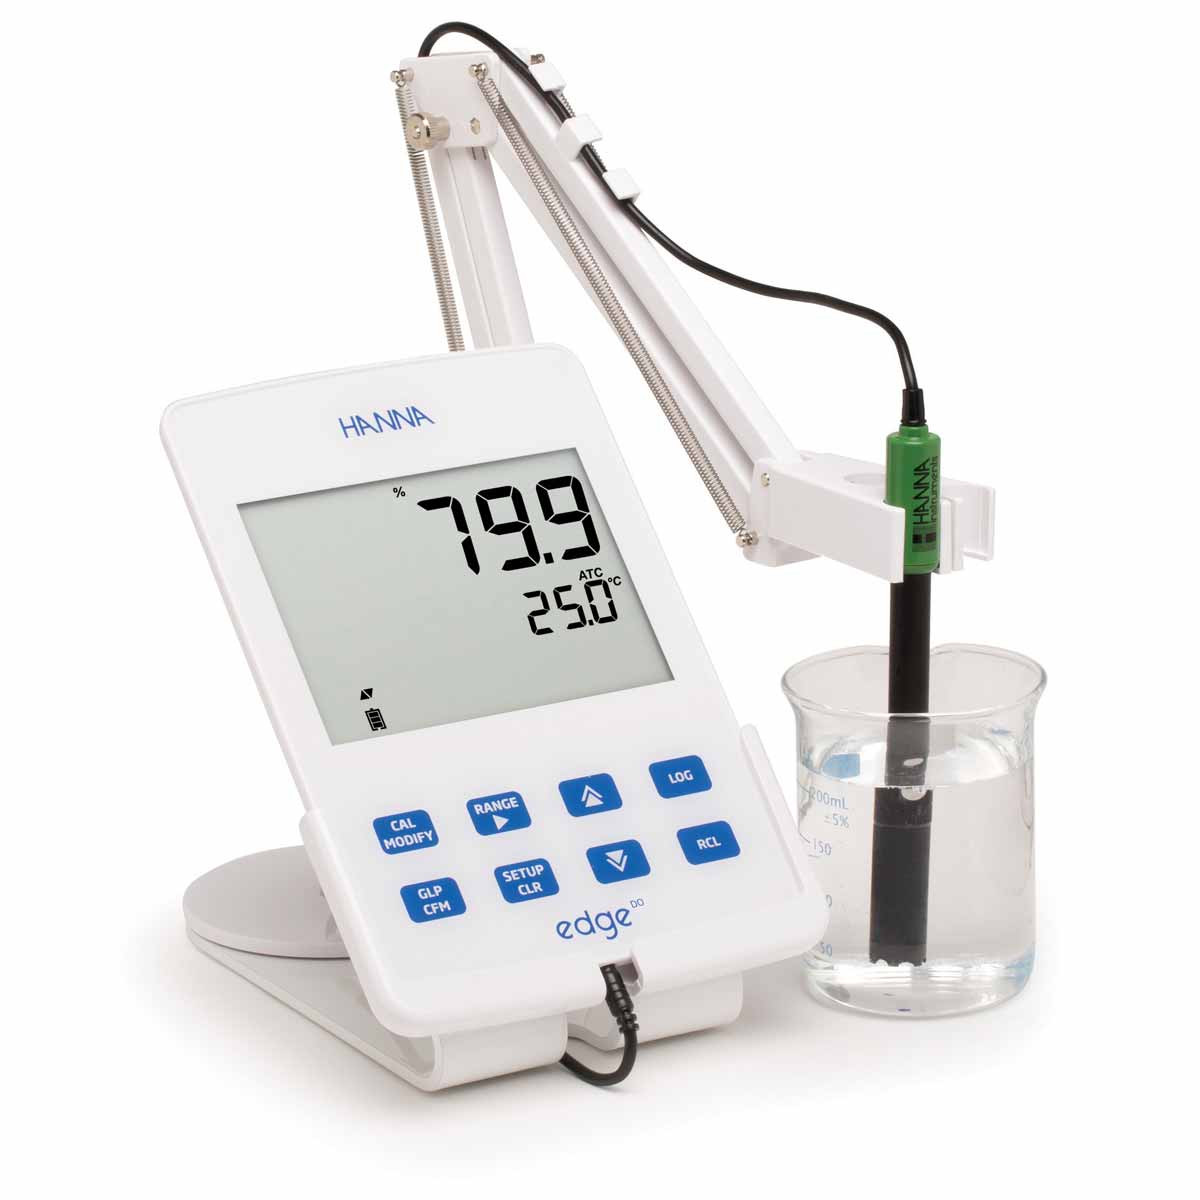 edge® Dedicated Dissolved Oxygen Meter